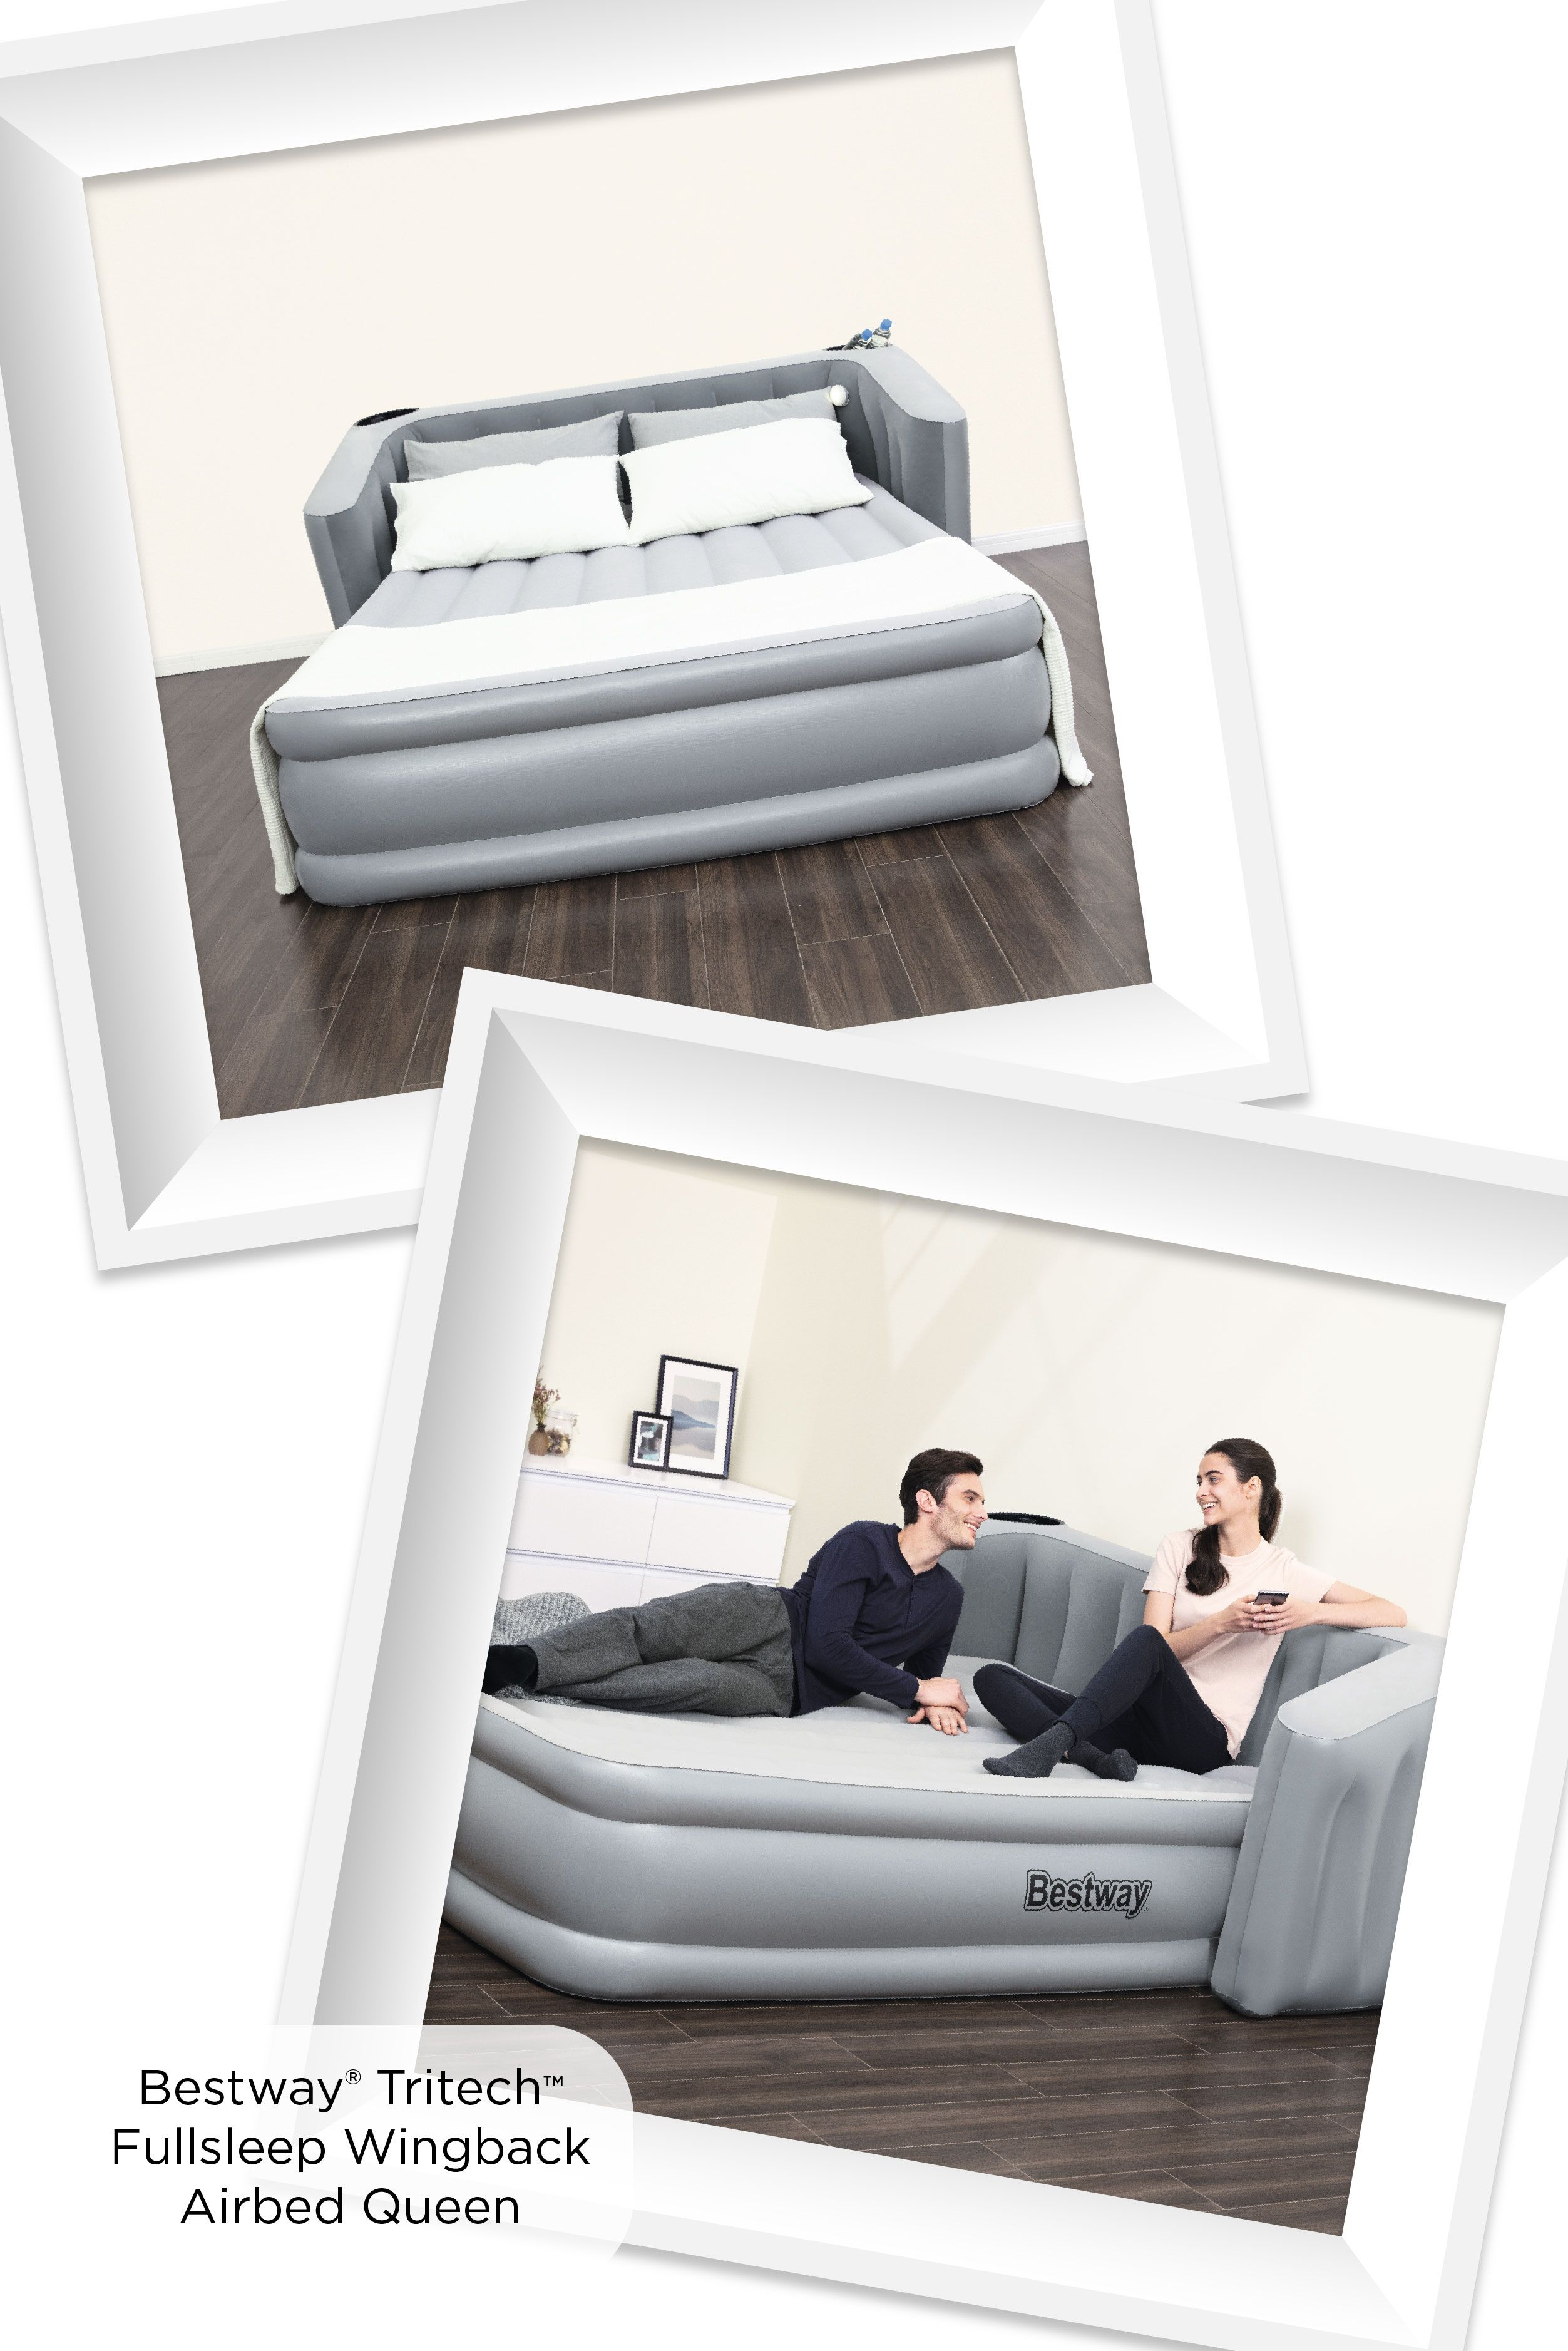 Bestway FullSleep Wingback Tritech 31 Inch Airbed with